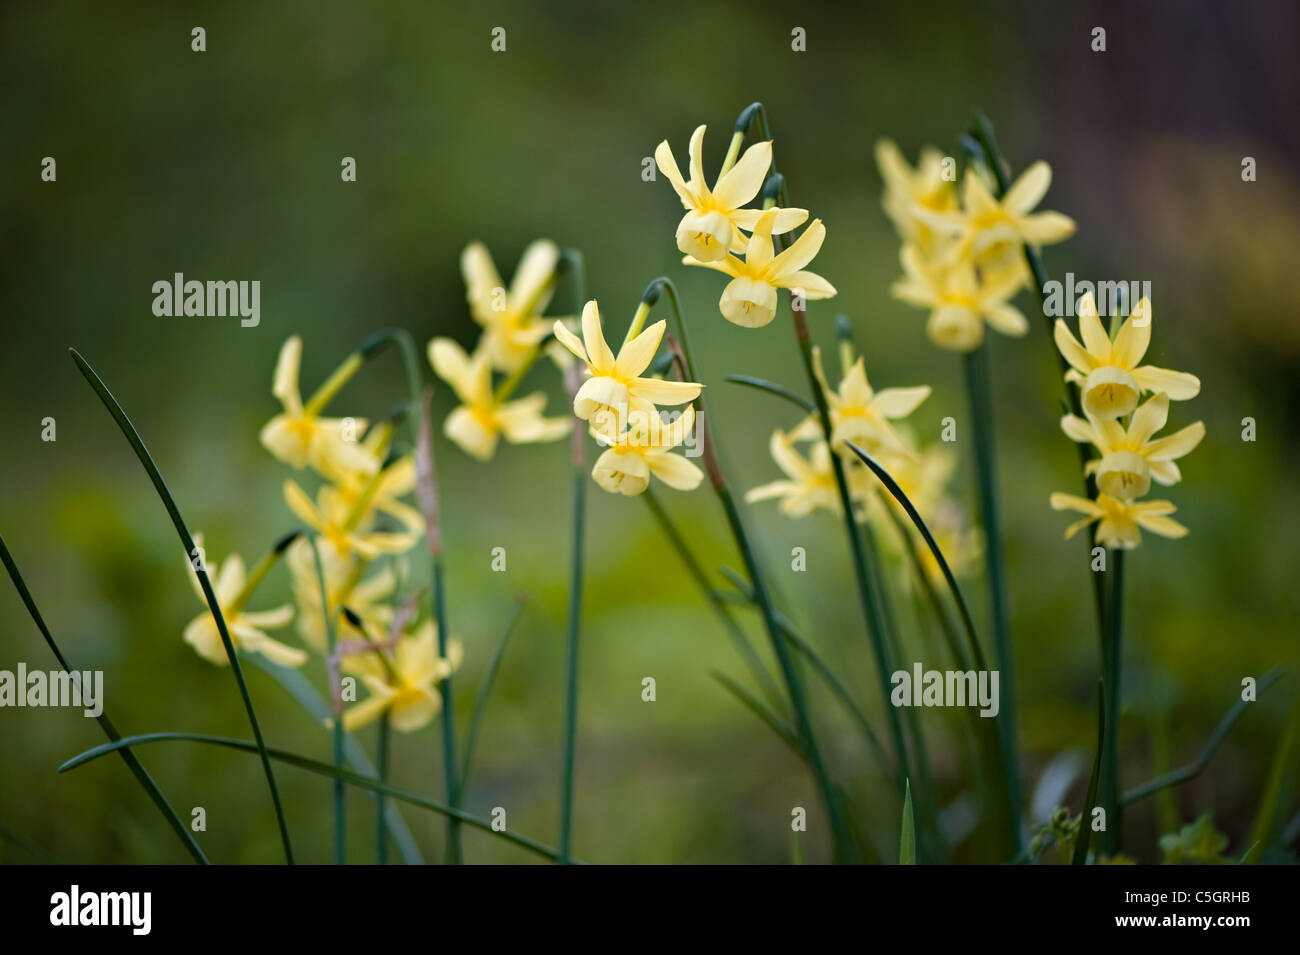 Close-up of the spring flowering Narcissus 'Hawera' - Daffodil flowers - Stock Image